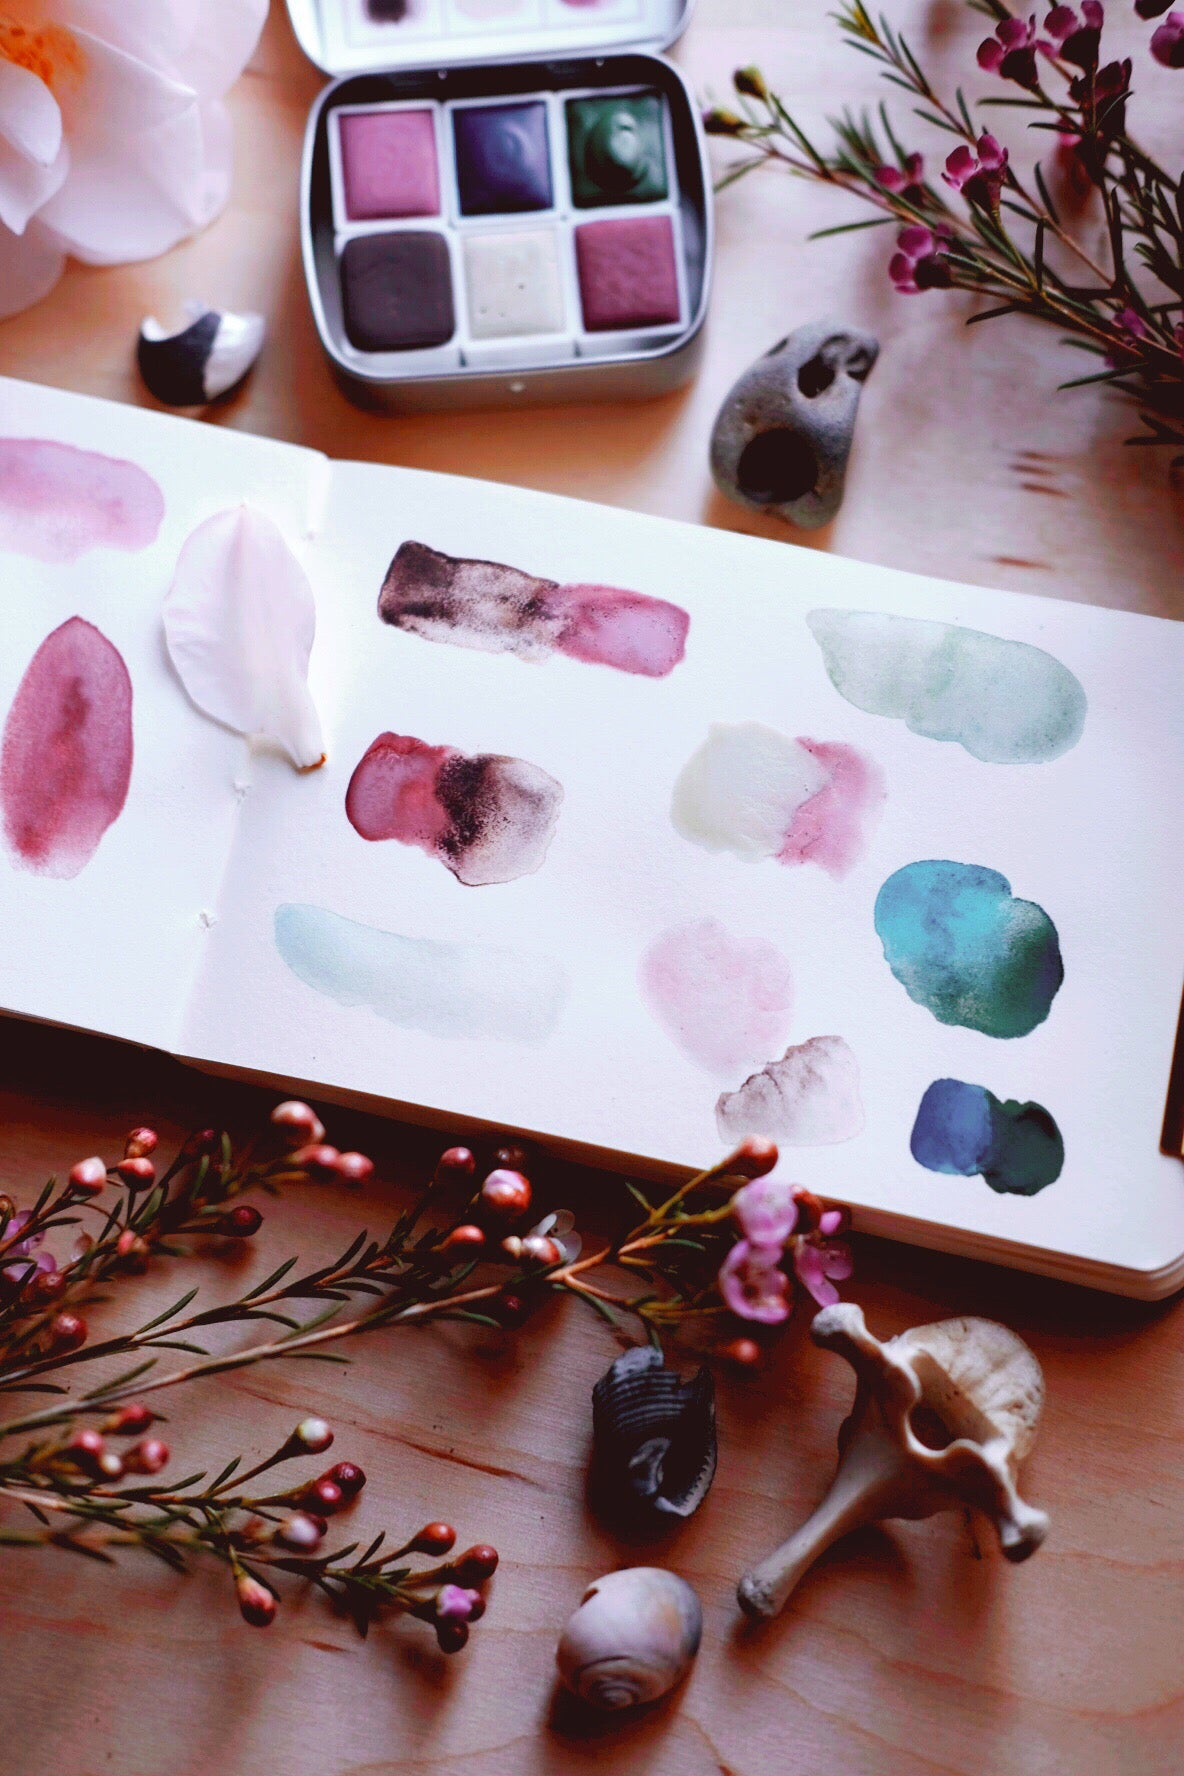 RESERVE for Lourdes + Seashell Floret - Limited edition Gemstone Mineral watercolor palette